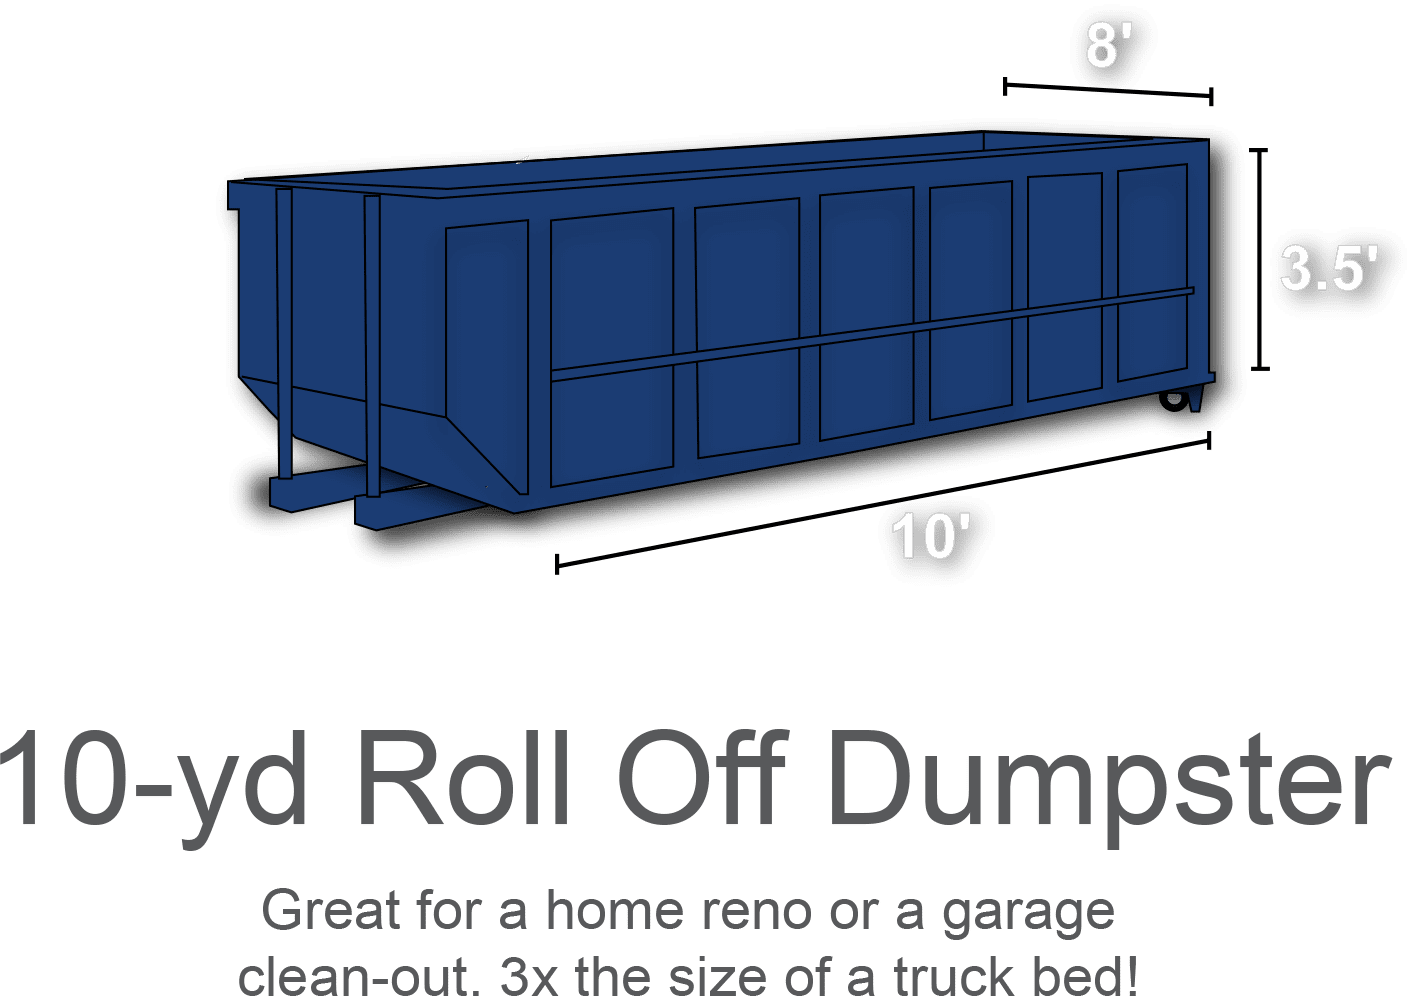 10 yard roll off dumpster rental